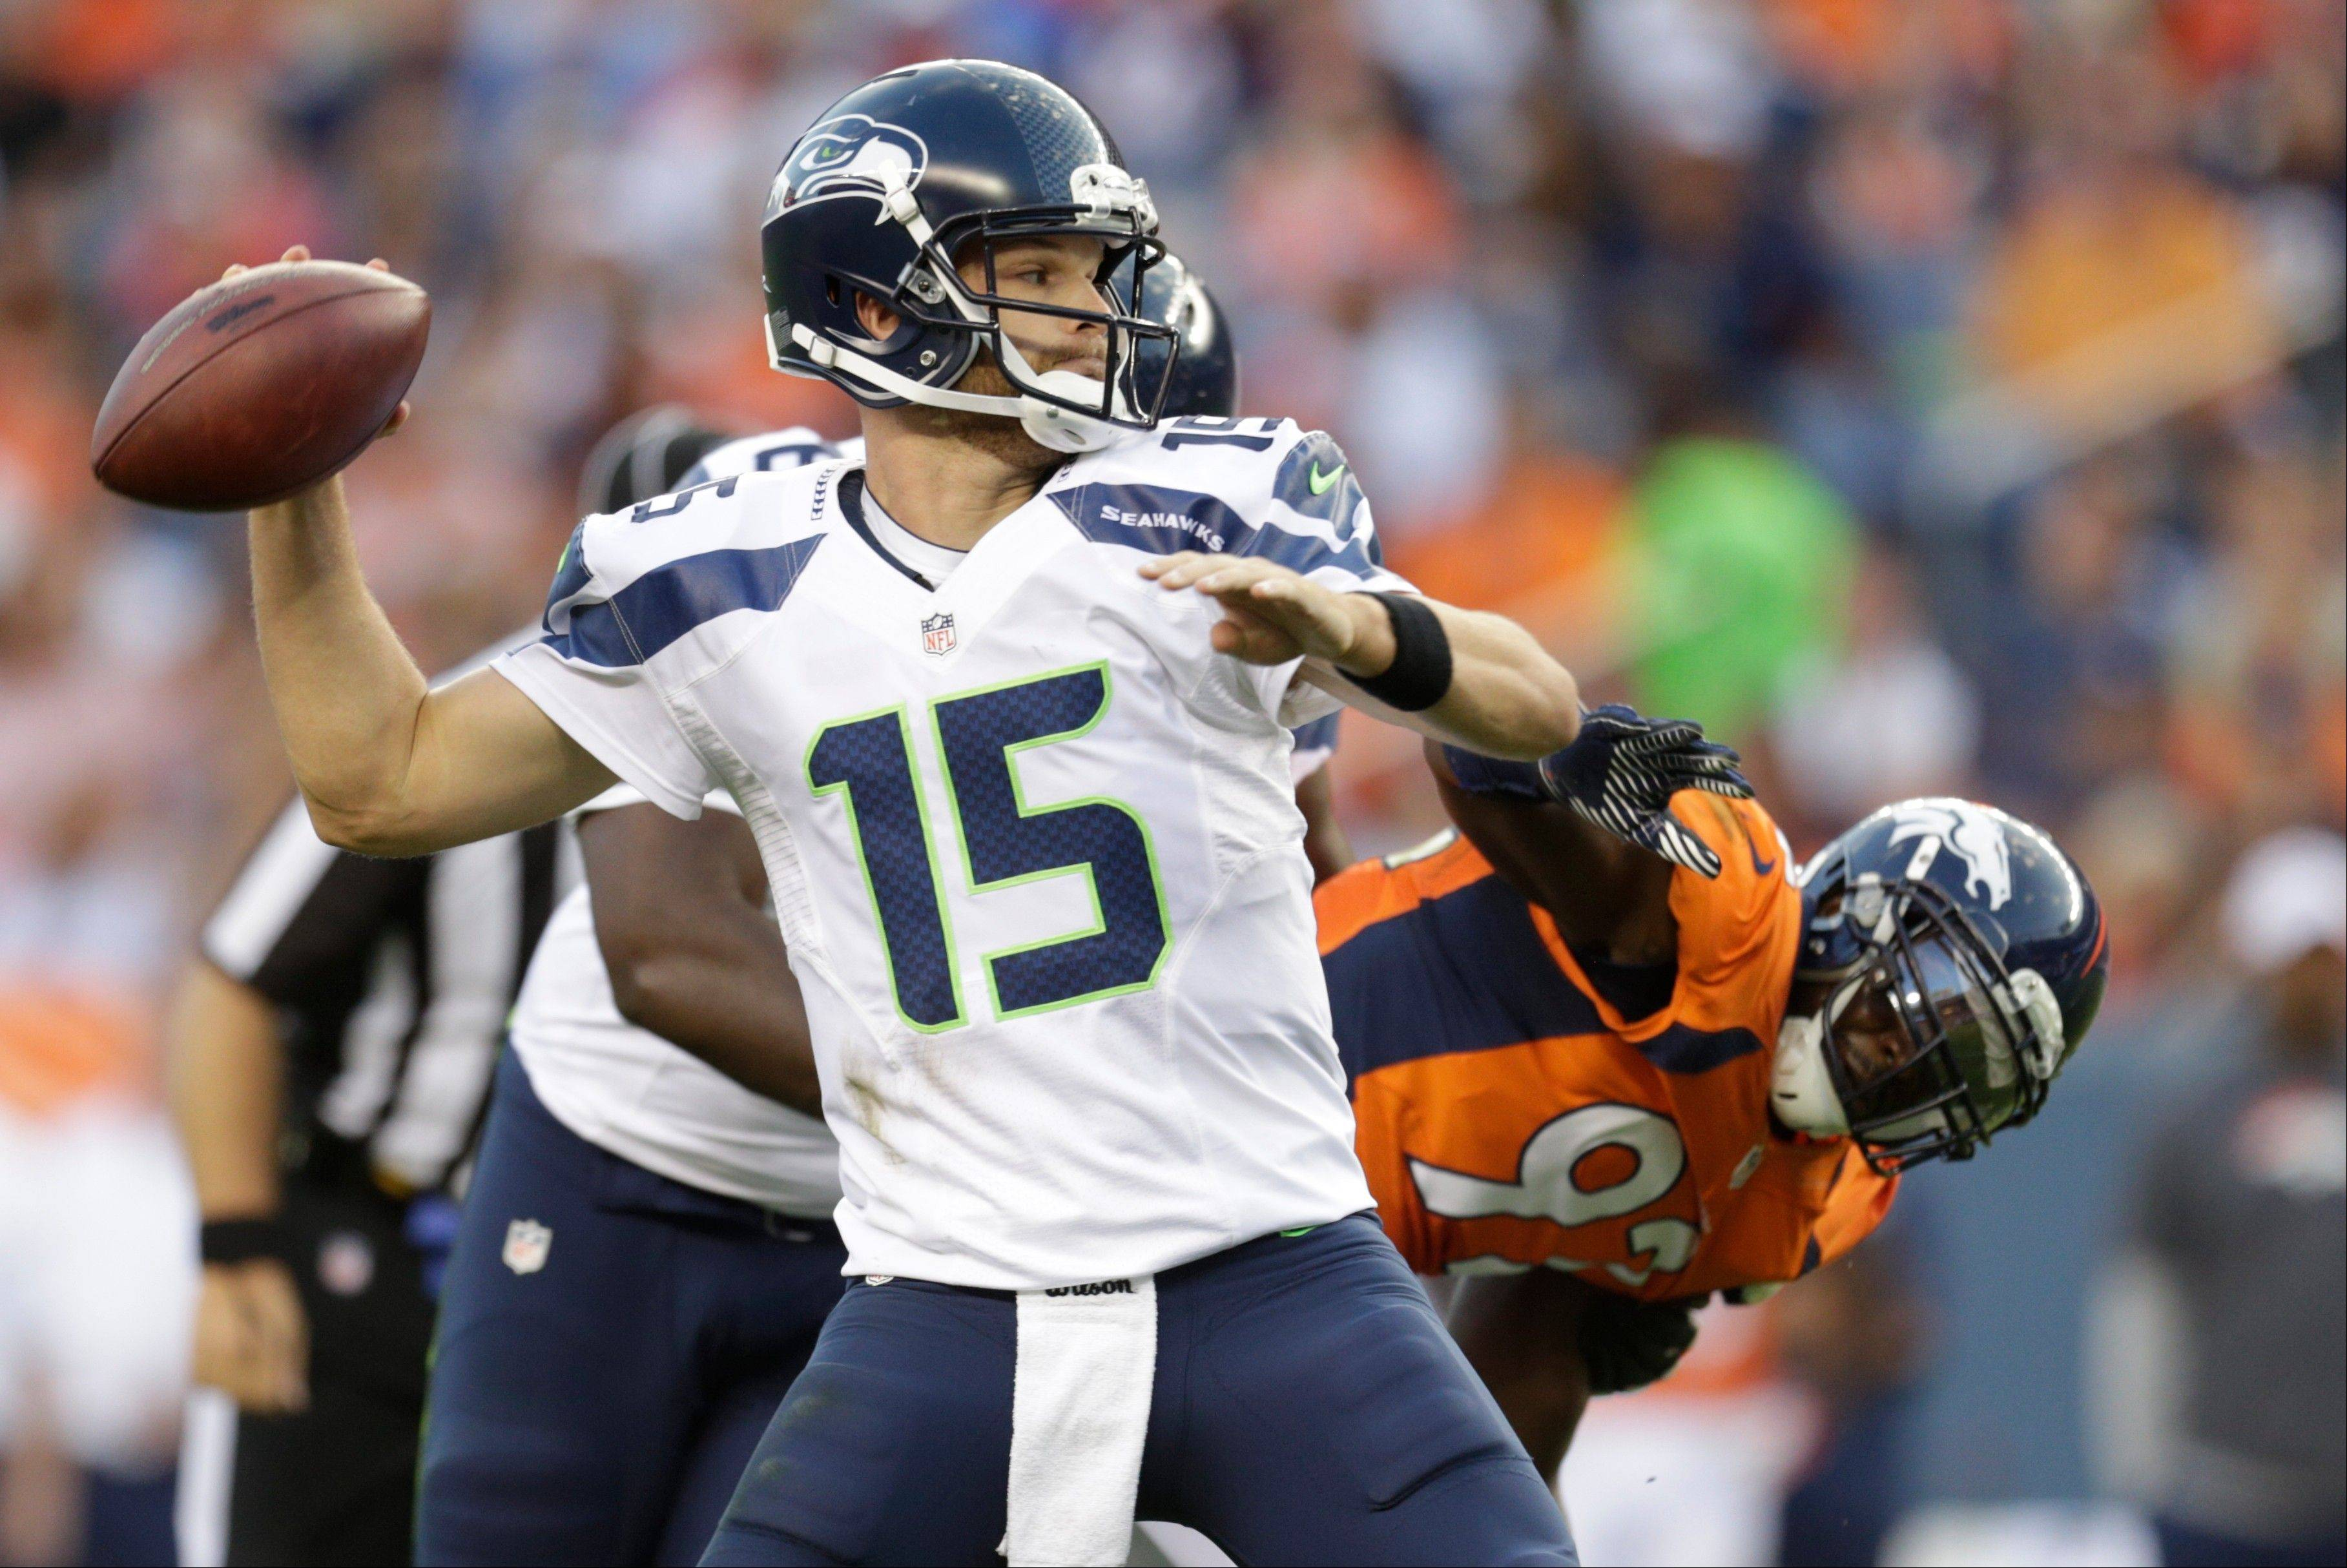 Quarterback Matt Flynn Flynn signed a three-year, $26 million deal with the Seahawks in 2012 but failed to beat out rookie Russell Wilson for the starting job. Now he's is a member of the Oakland Raiders.